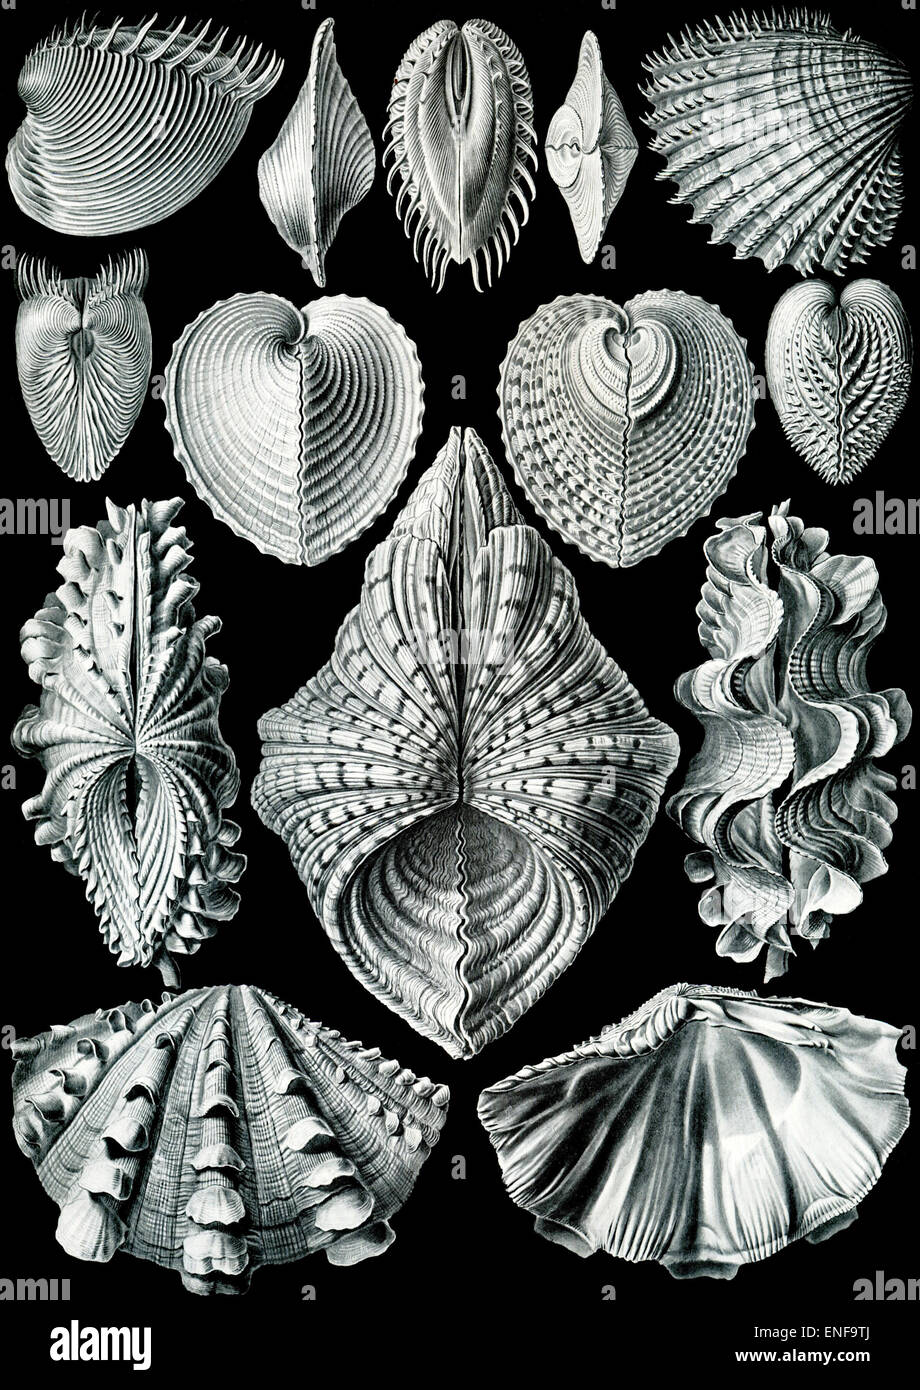 Acephala Bivalvia (Mollusks), by Ernst Haeckel, 1904 - Editorial use only. - Stock Image